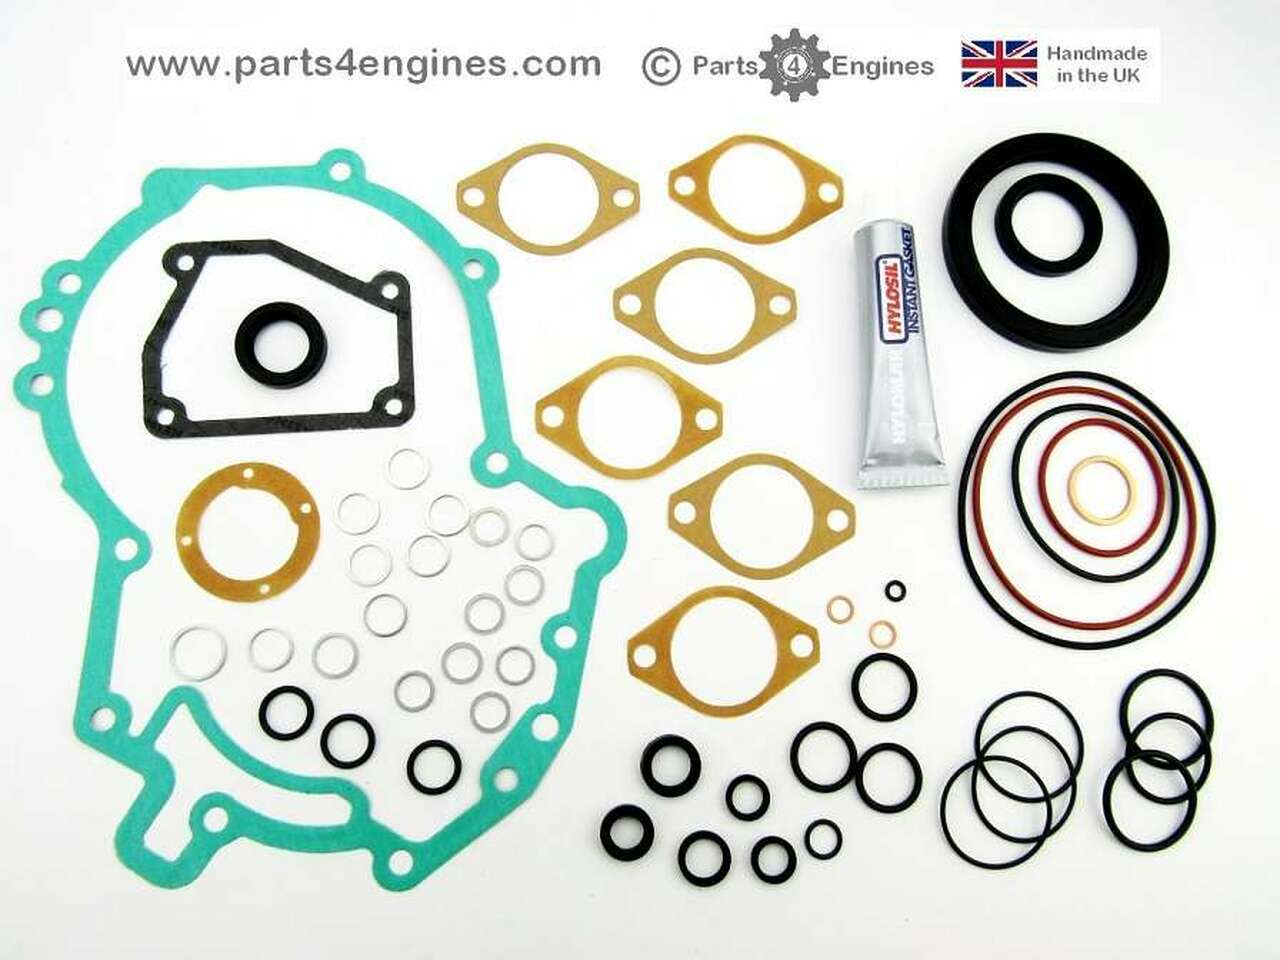 Volvo Penta 2002 bottom gasket & seal set from parts4engines.com